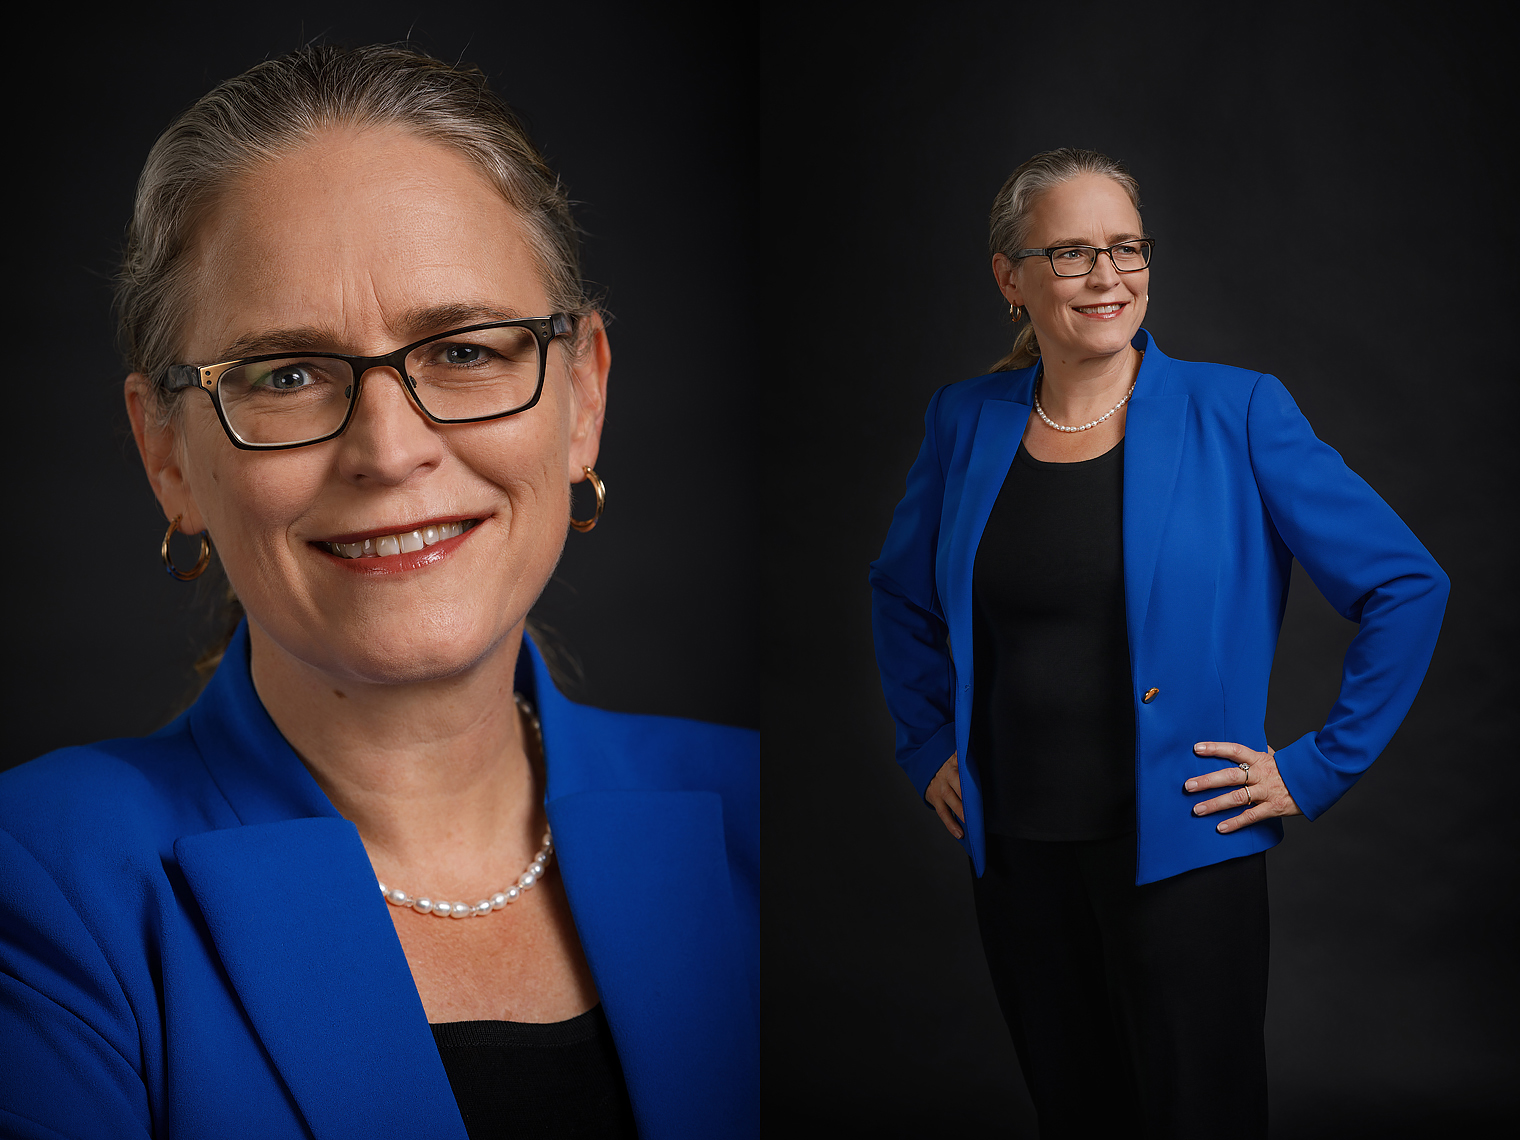 117th CONGRESS • REP. CAROLYN BOURDEAUX